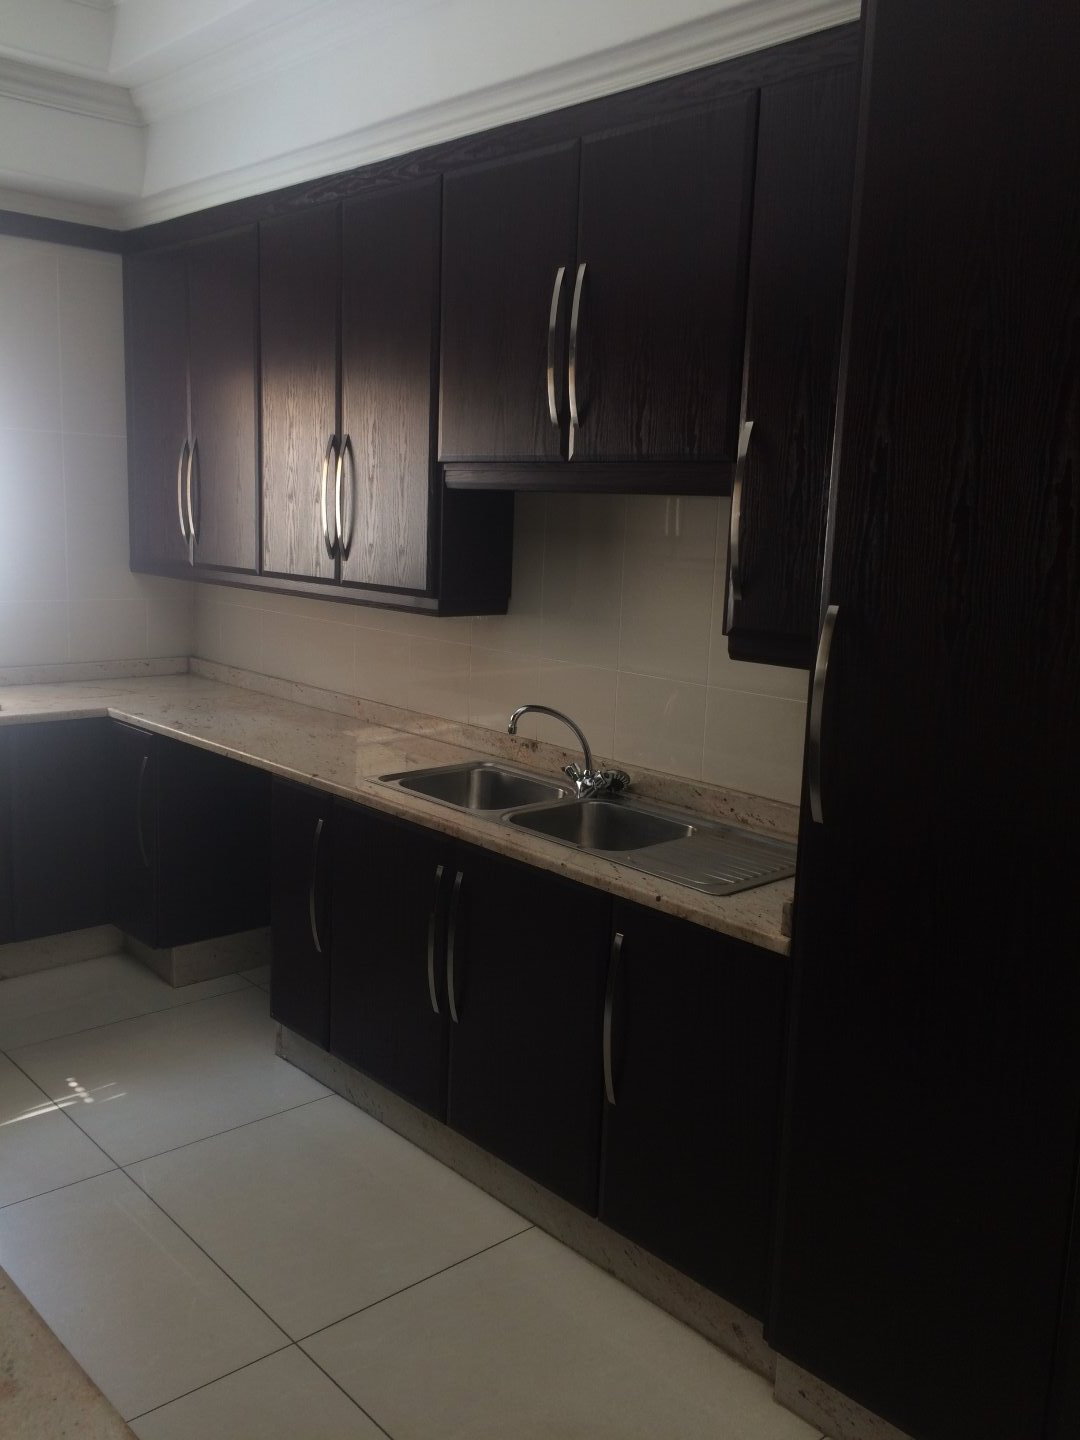 Meyersdal property to rent. Ref No: 13617379. Picture no 6